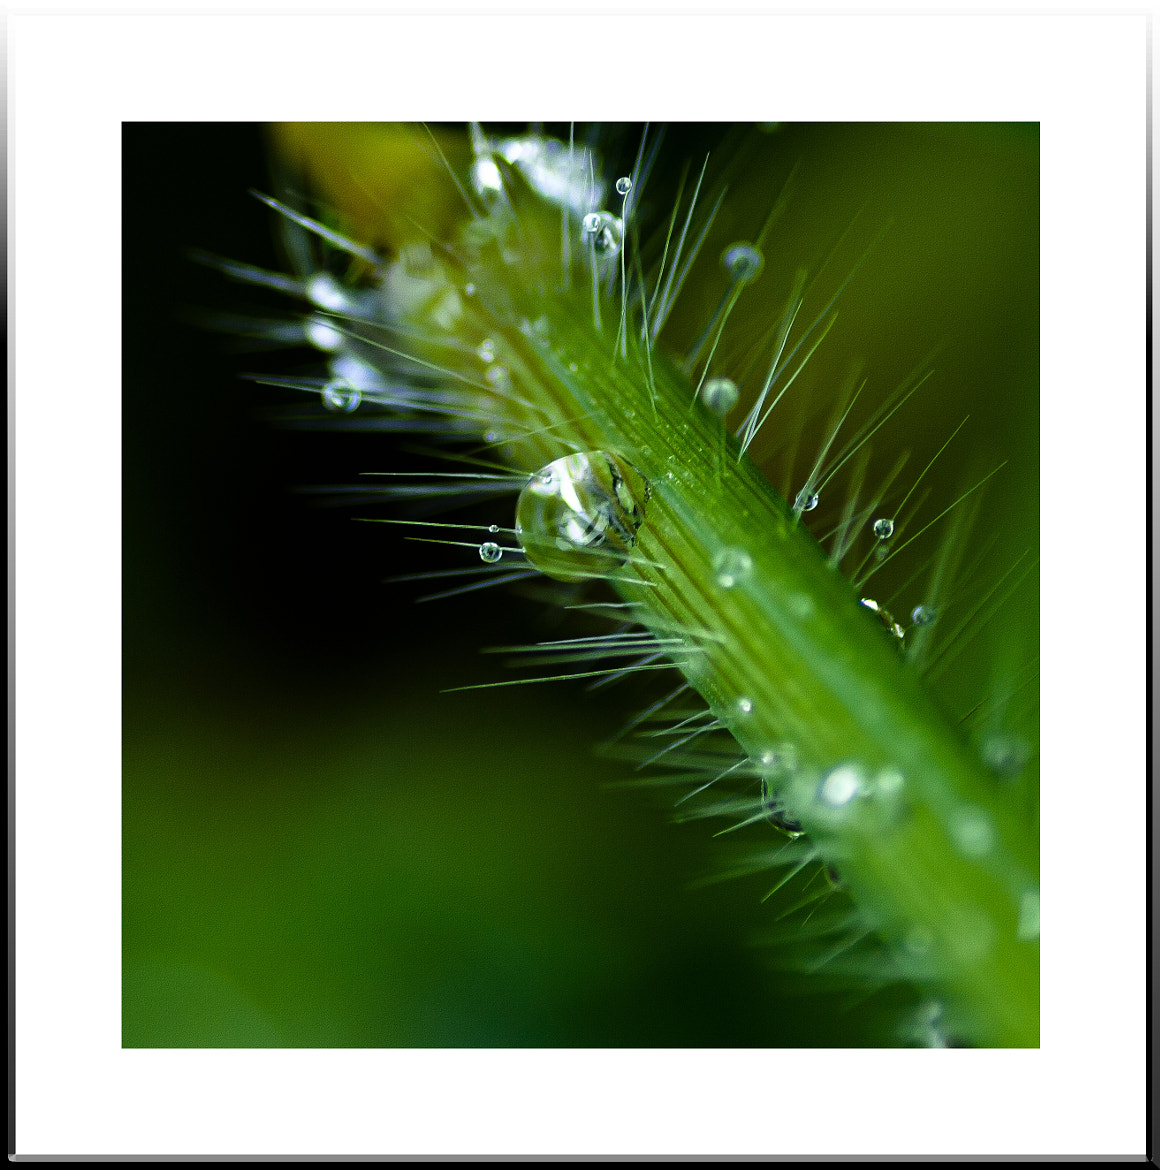 Photograph Dew on grass by Rajdev S on 500px